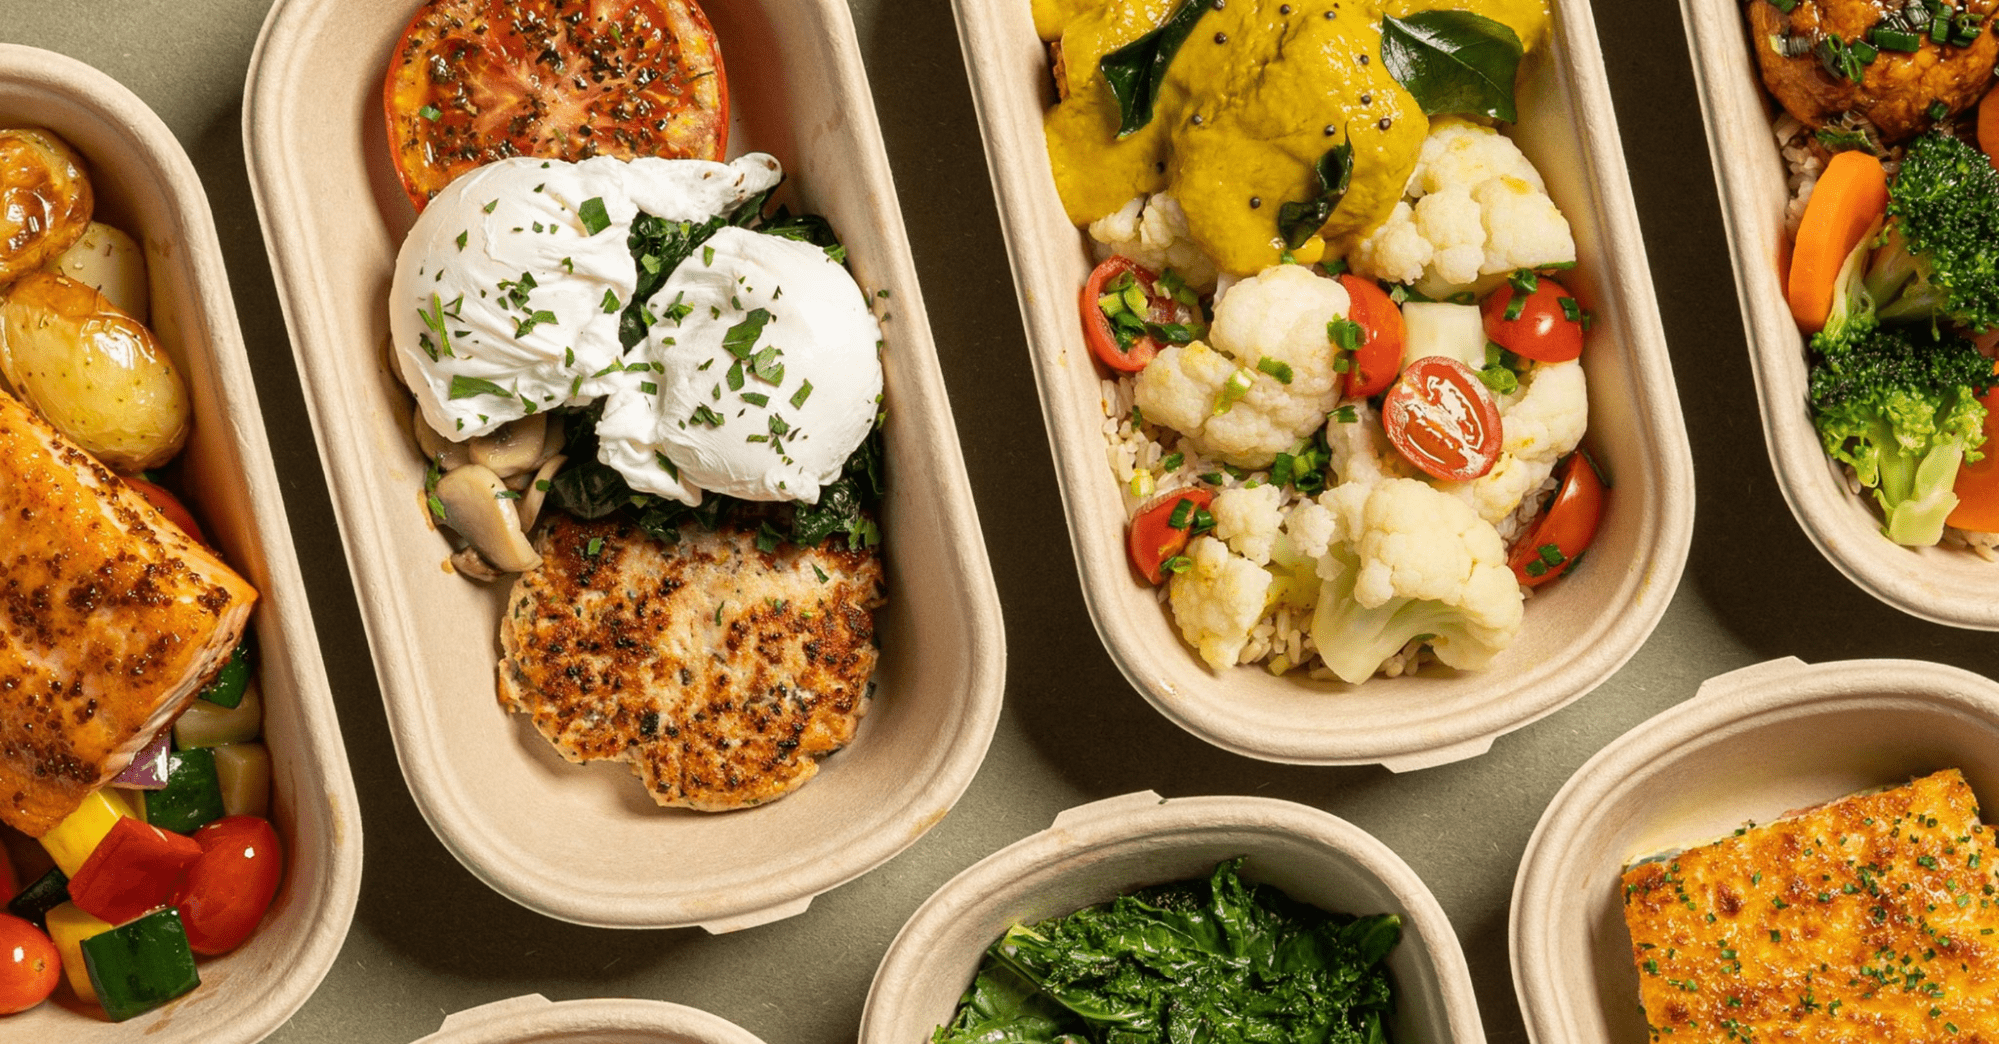 8 Healthy Food Delivery Services That Include Keto Vegetarian Options